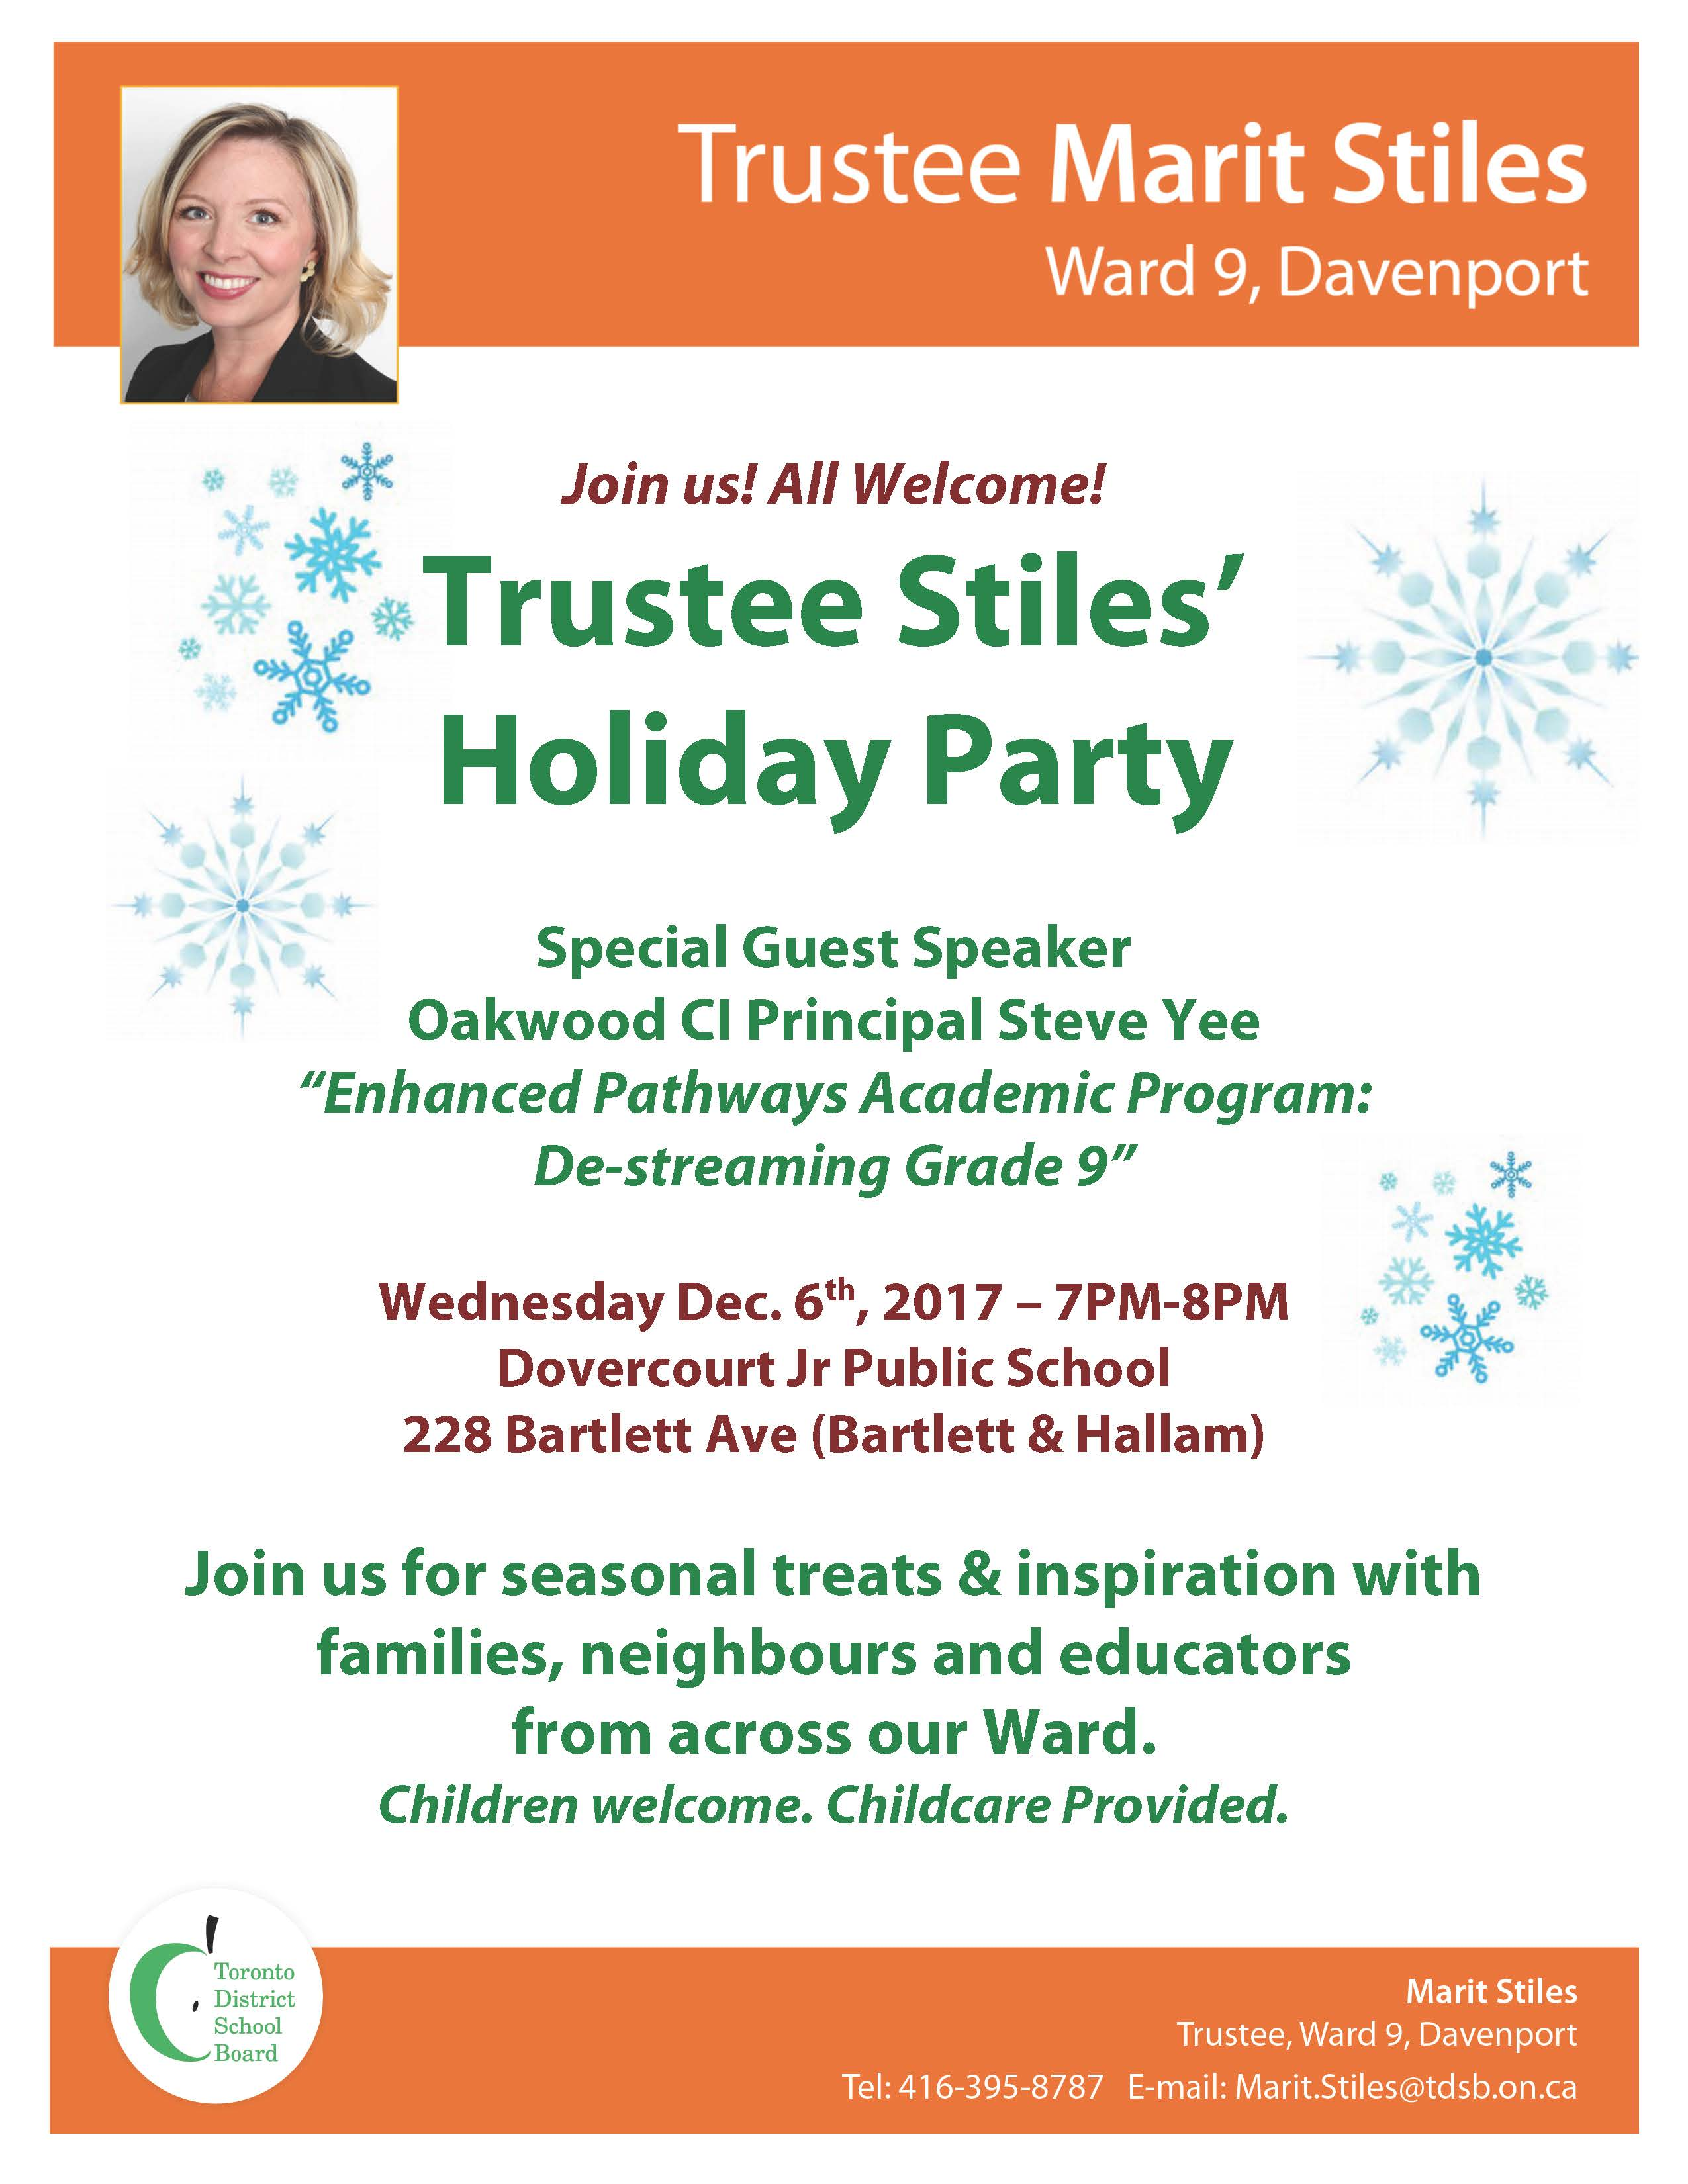 2017 12 06 Flyer Ward 9 Forum and Holiday Party M.Stiles